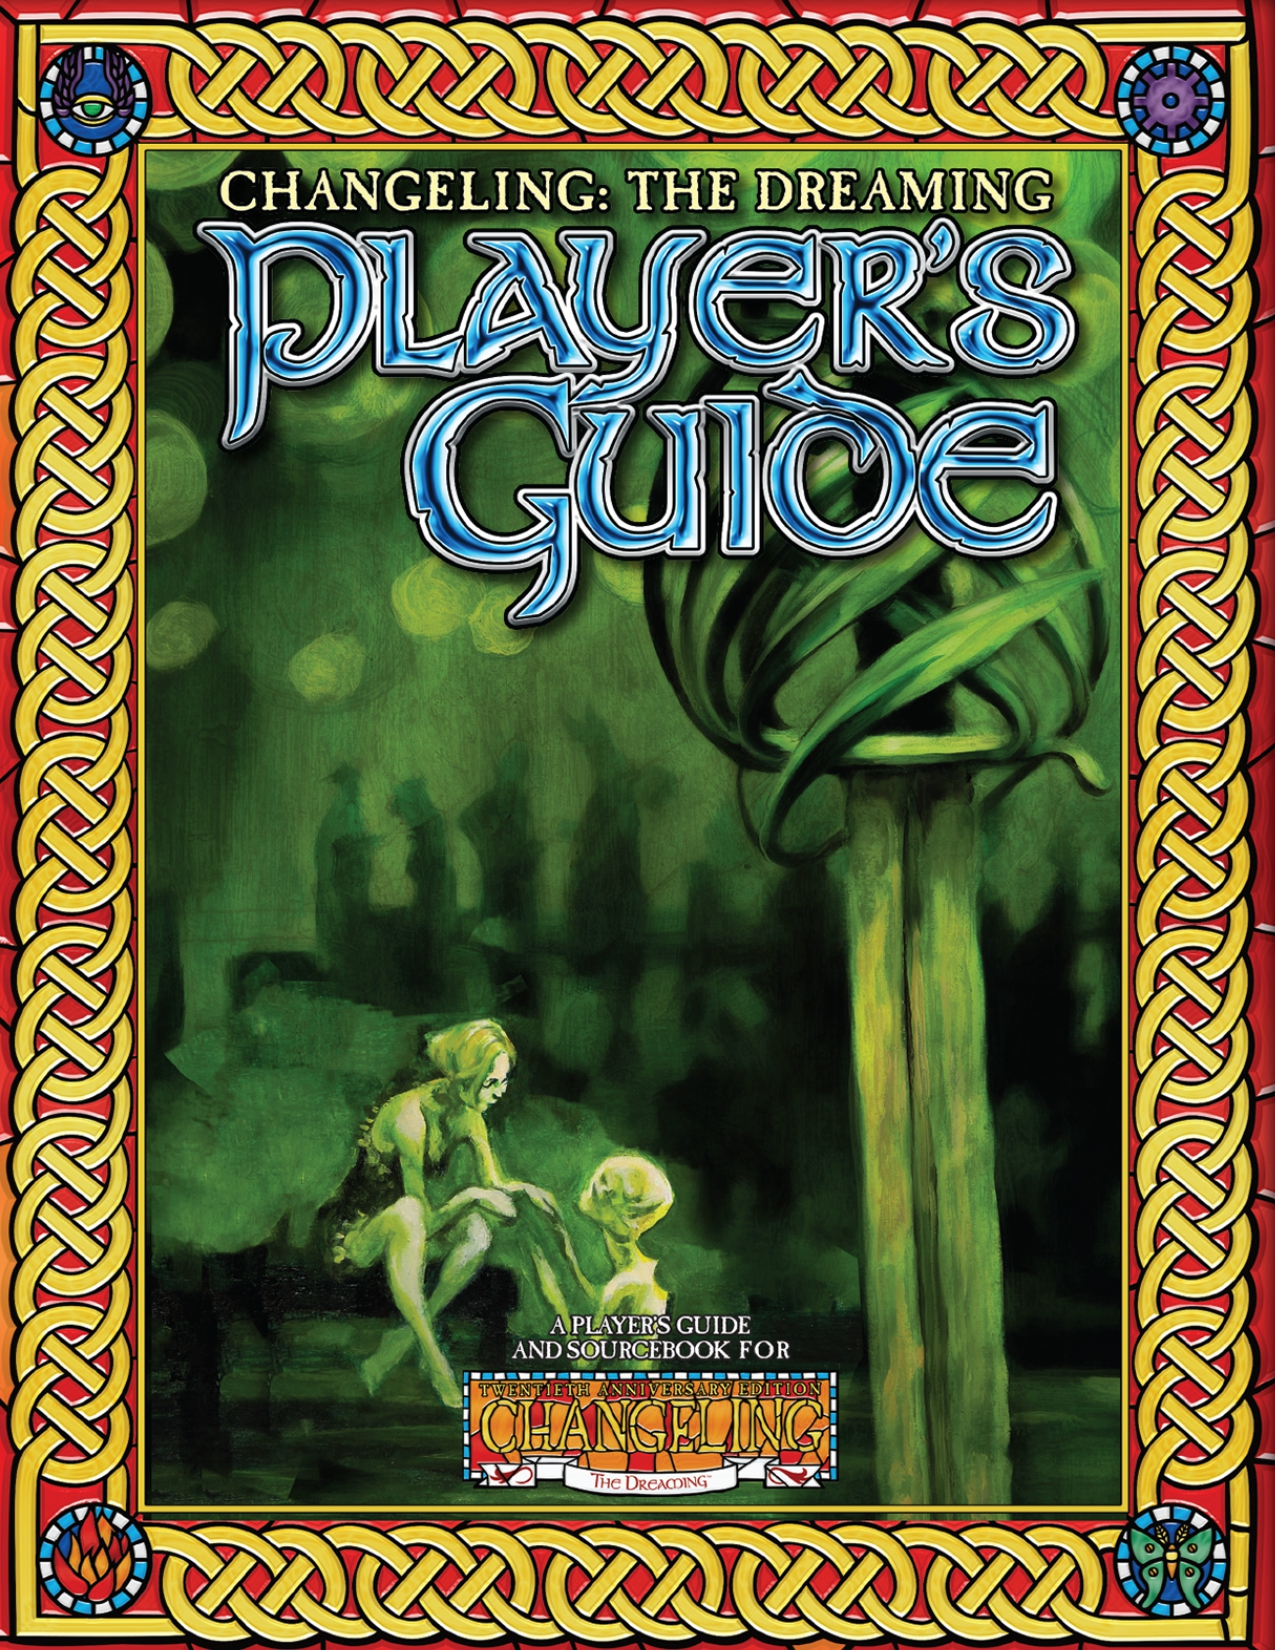 Changeling: The Dreaming 20th Anniversary Player's Guide